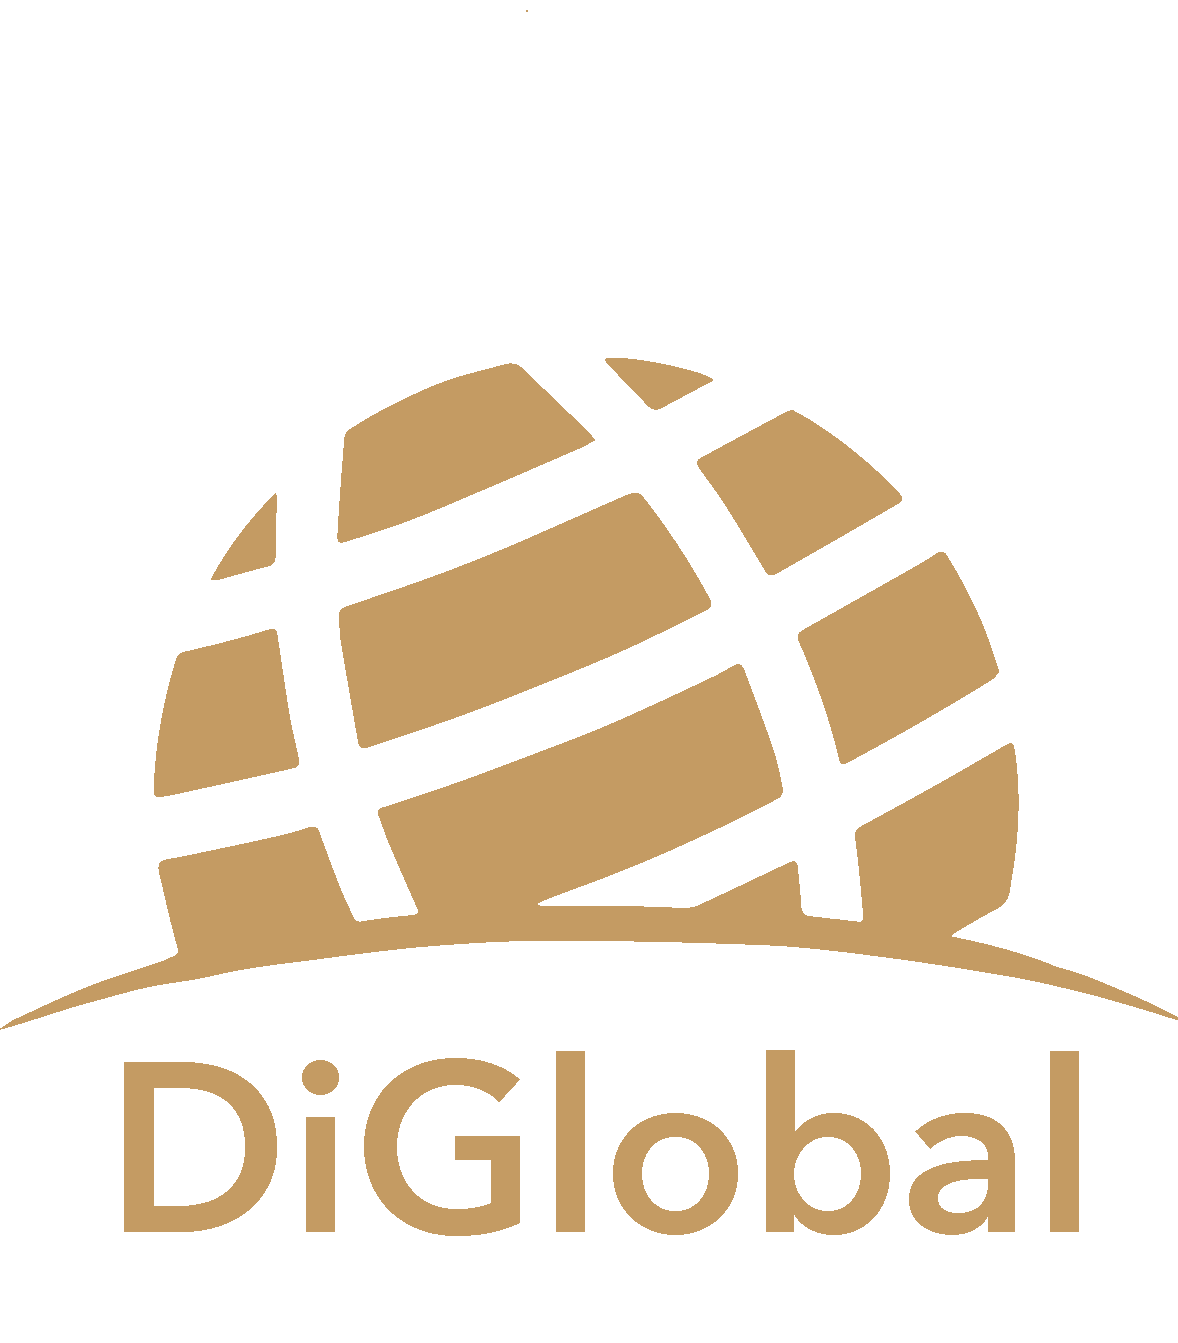 D&I Global, study and travel in the UK and worldwide